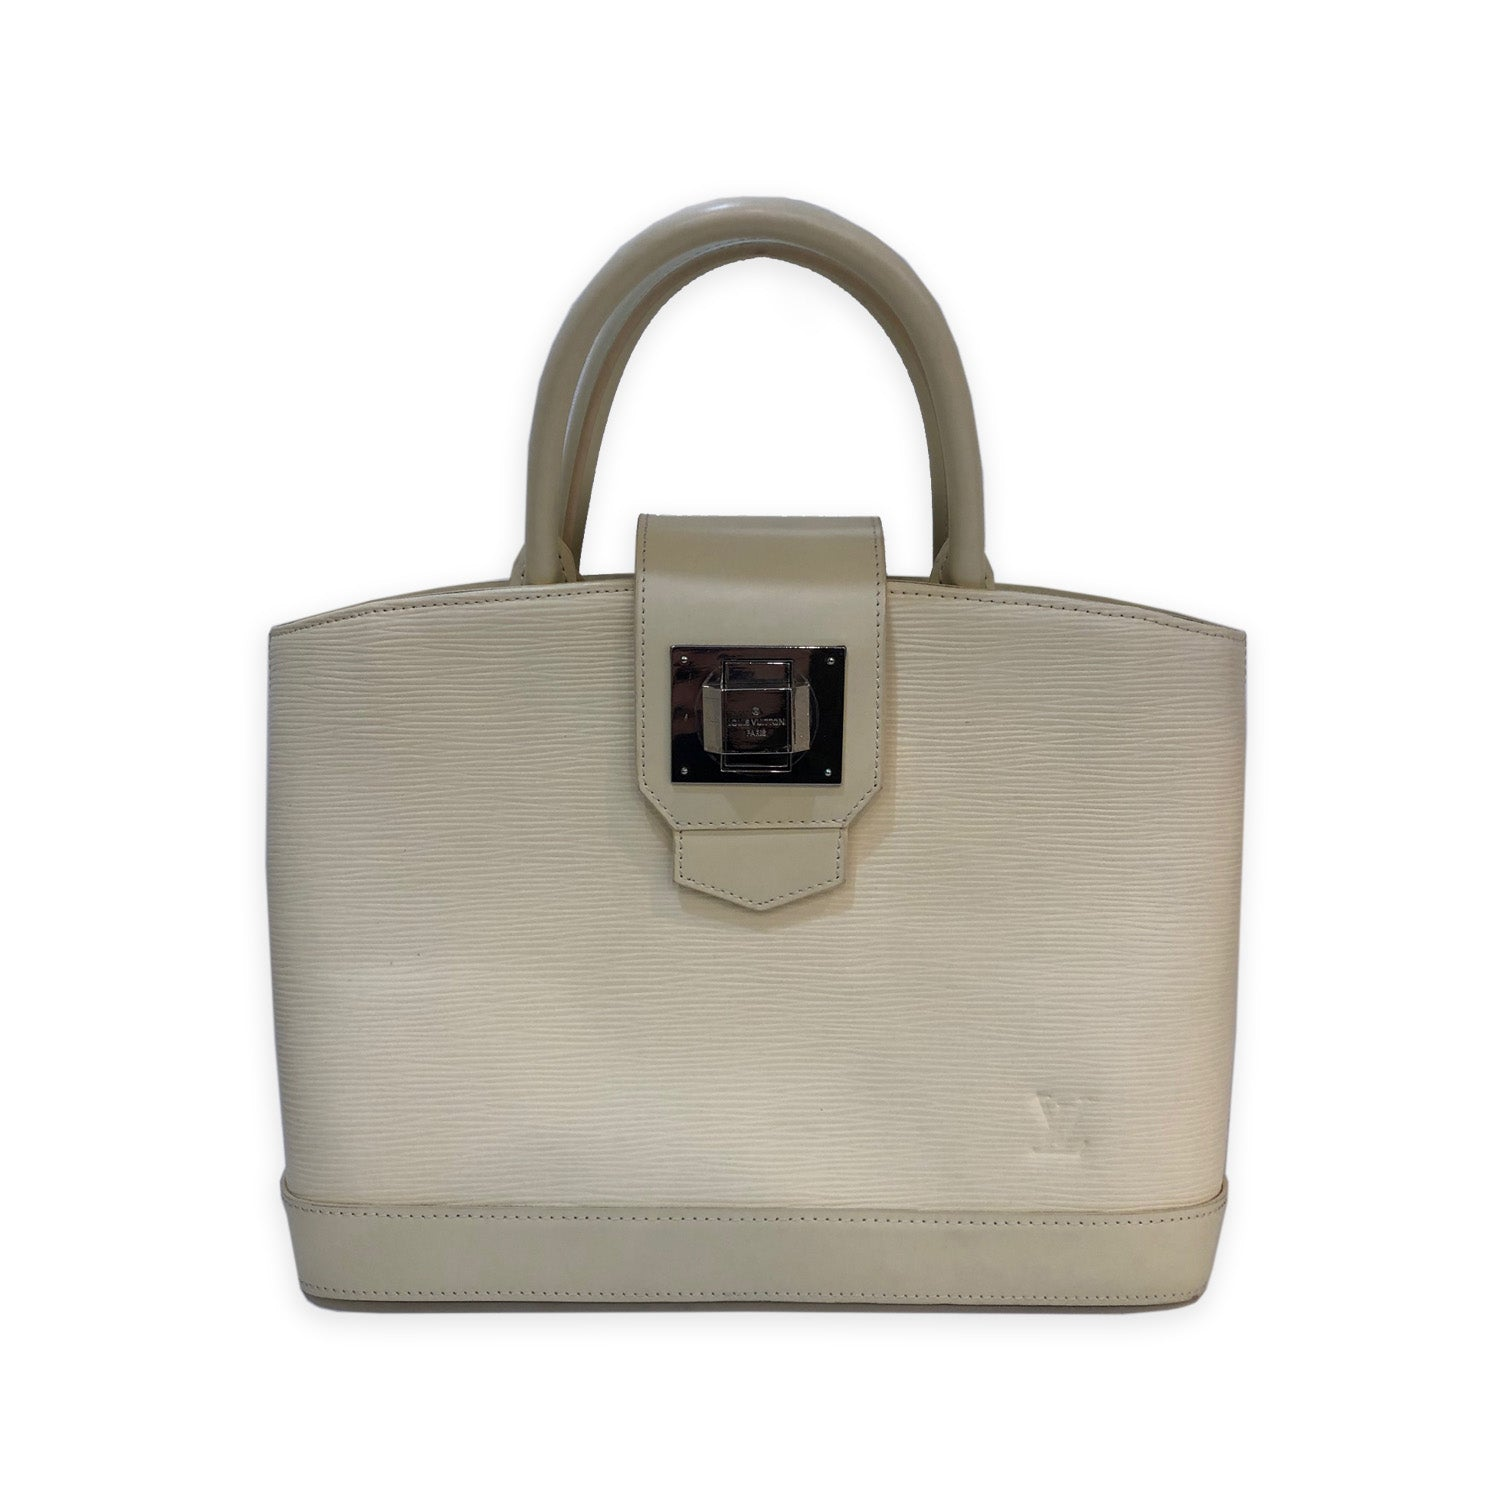 Louis Vuitton White Epi Leather Top Handle Bag